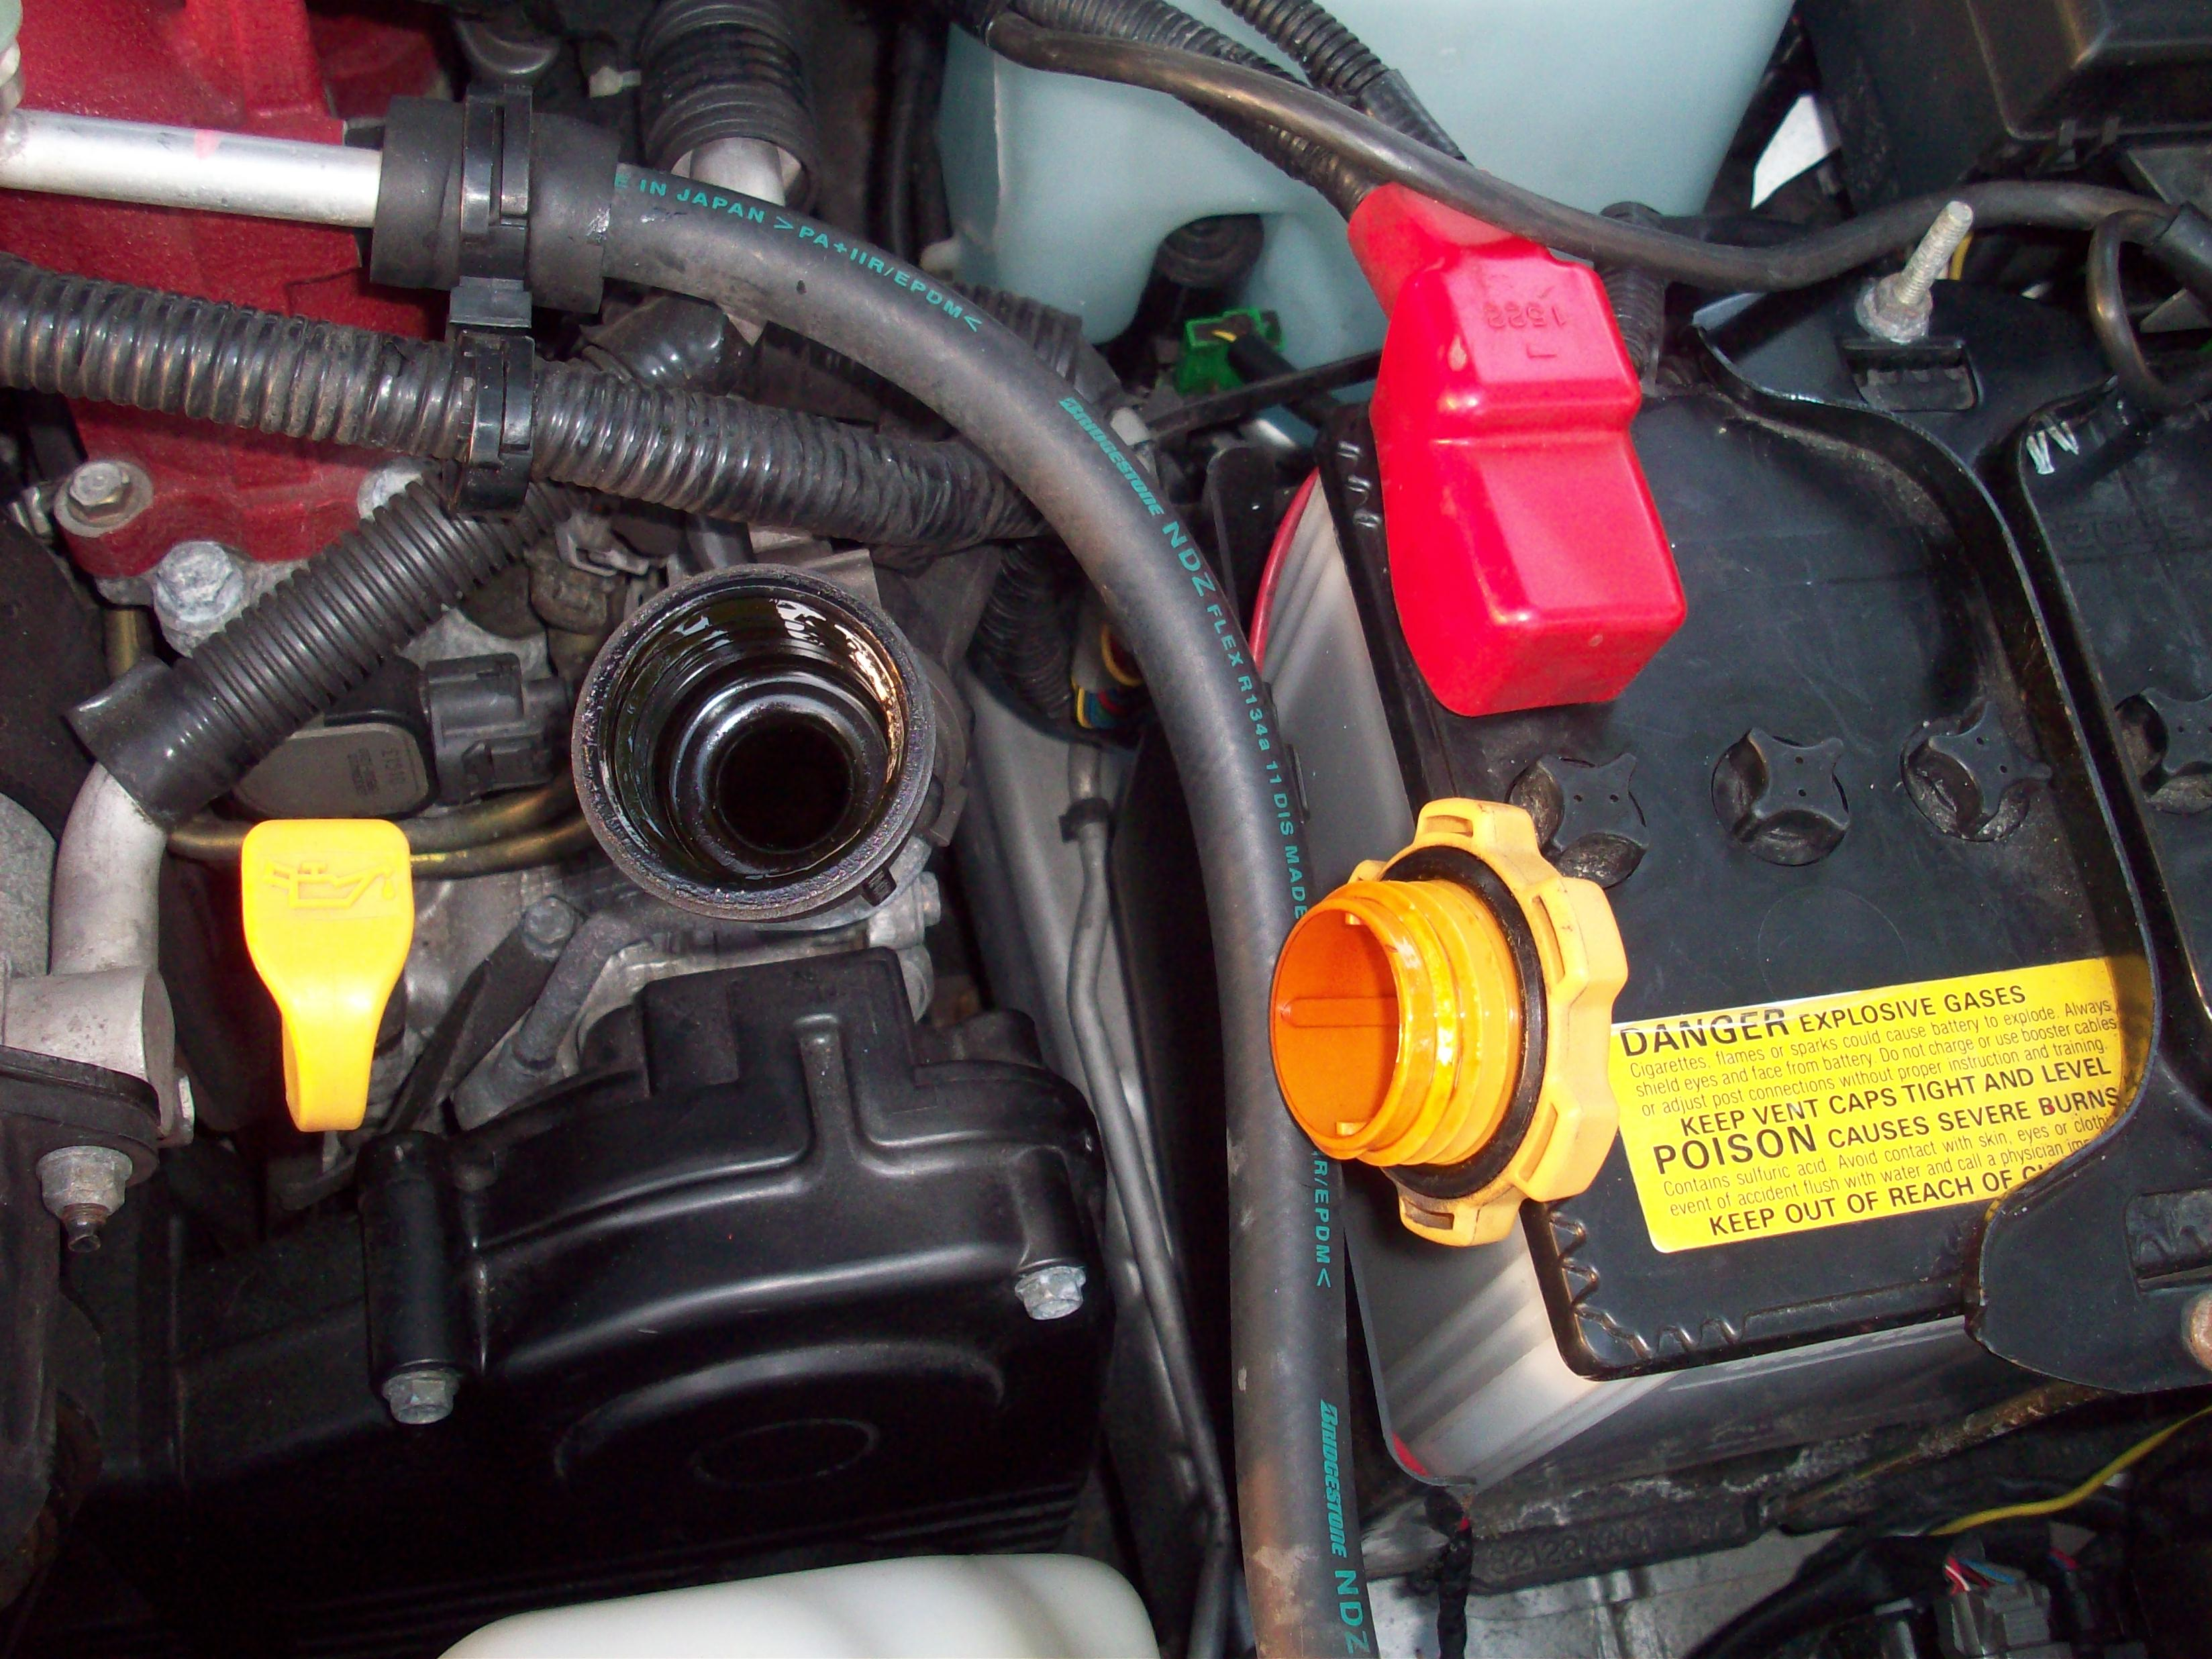 How To Boostleak Test A Subaru Ej205 Engine Diagram Dial In Your Air Compressor Make Sure The Outlet Pressure Is Set Minimum Level On This Its Gauge Right For Our First Run